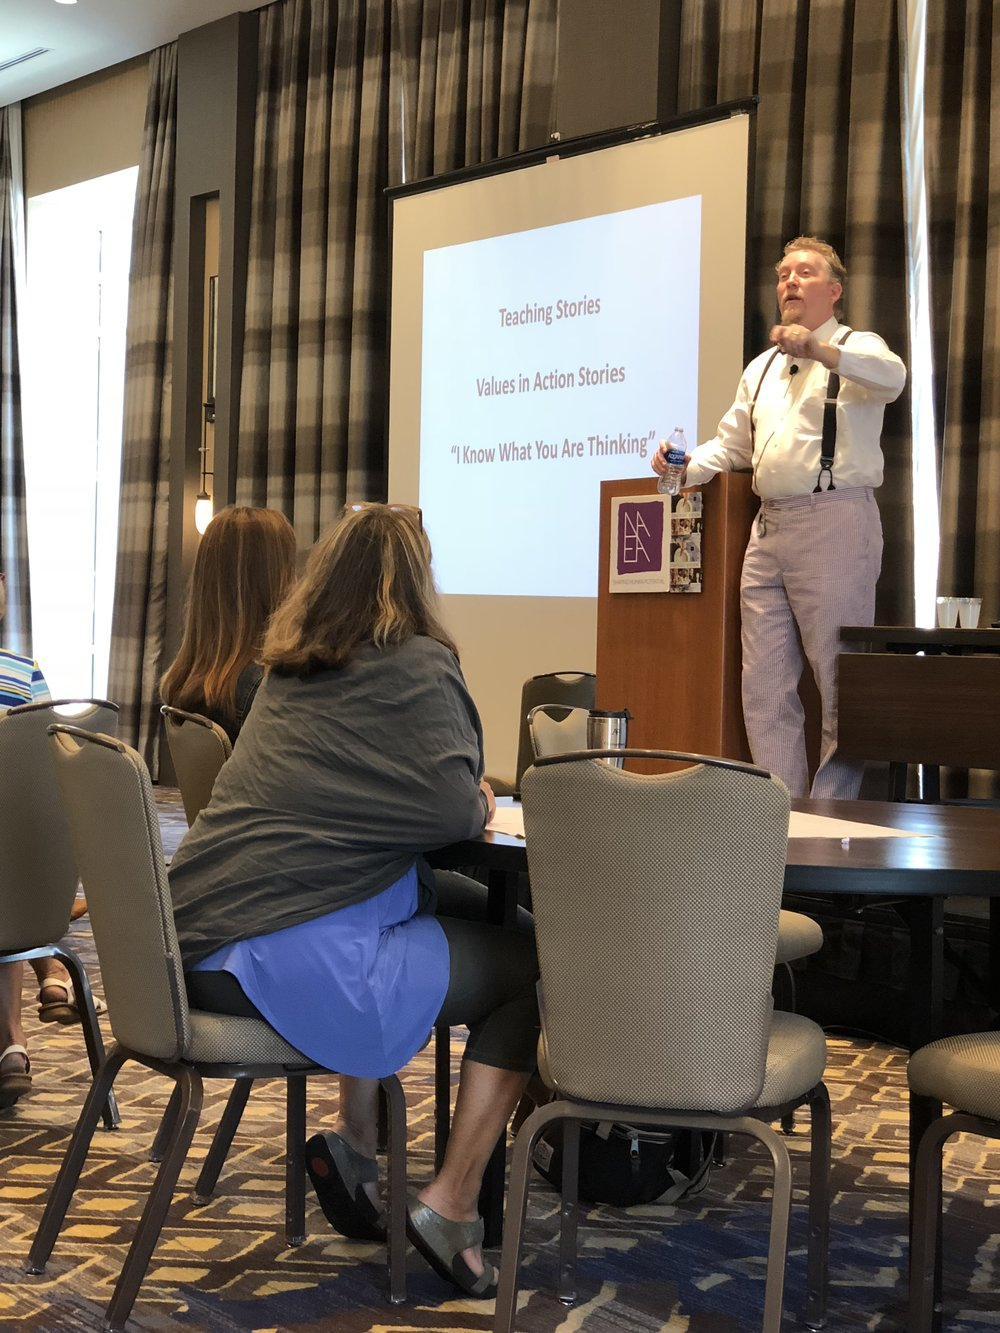 Tim Lowry mesmerizing art educators through the art of storytelling...